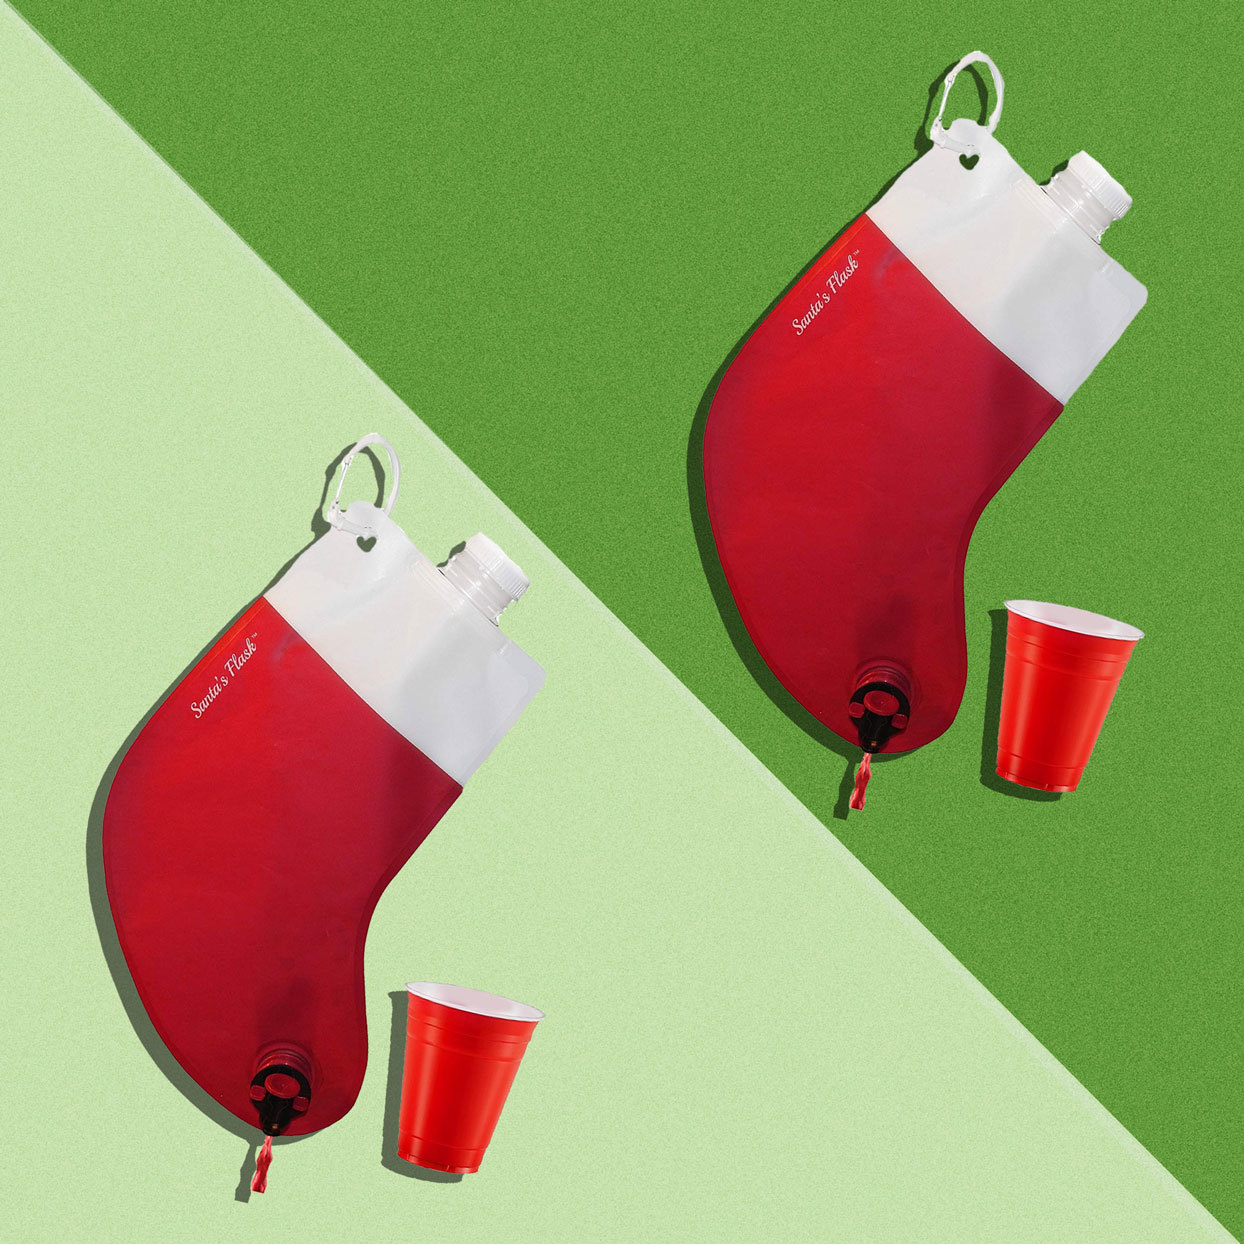 wine flask in the shape of a Christmas stocking